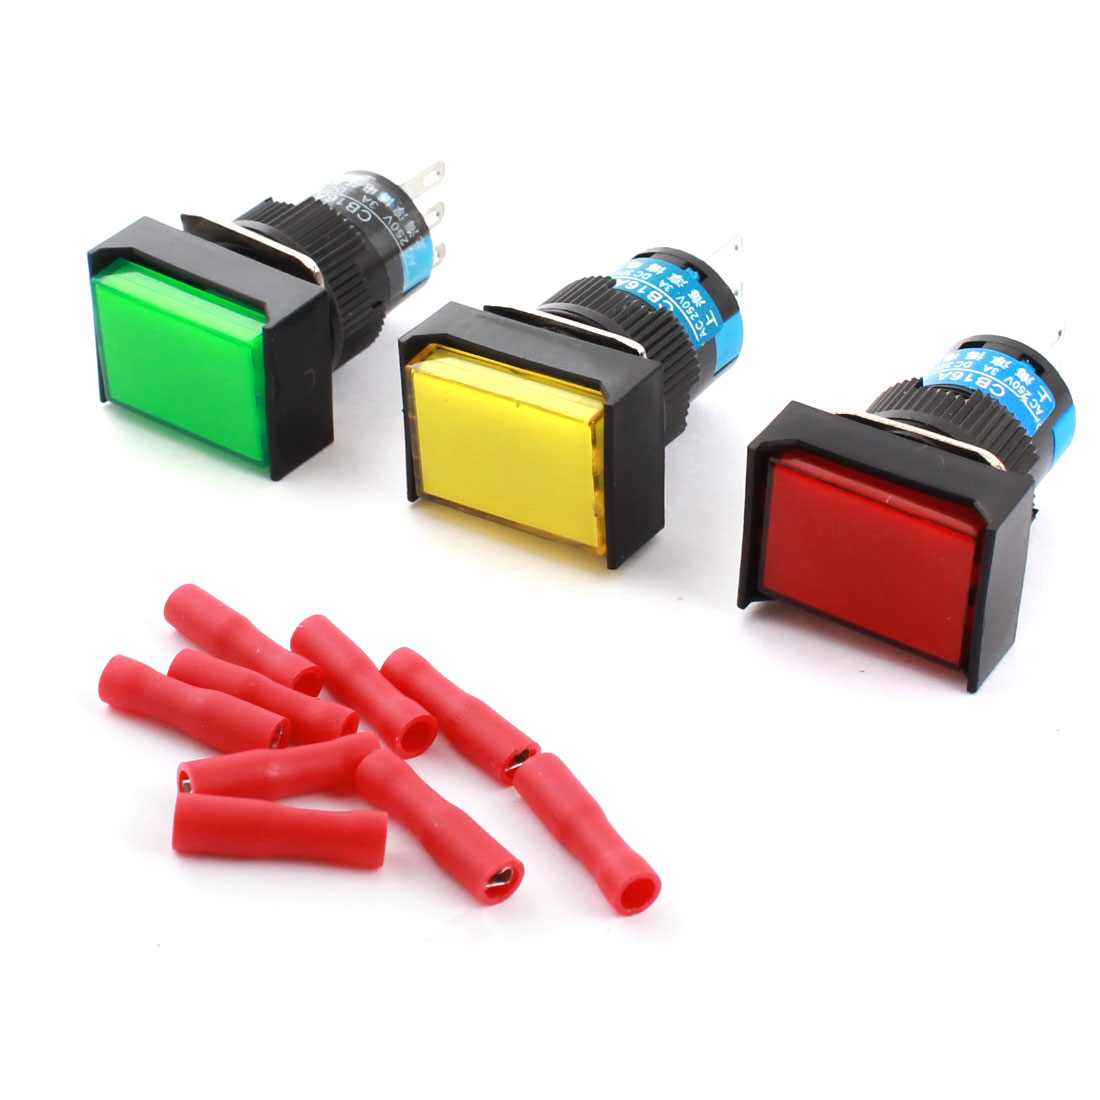 3 PCS 3Pins 16mm Threaded Panel Mounted SPDT Red Green Yellow Button Latching Rectangle Pushbutton Switch + 9pcs Crimp Terminals